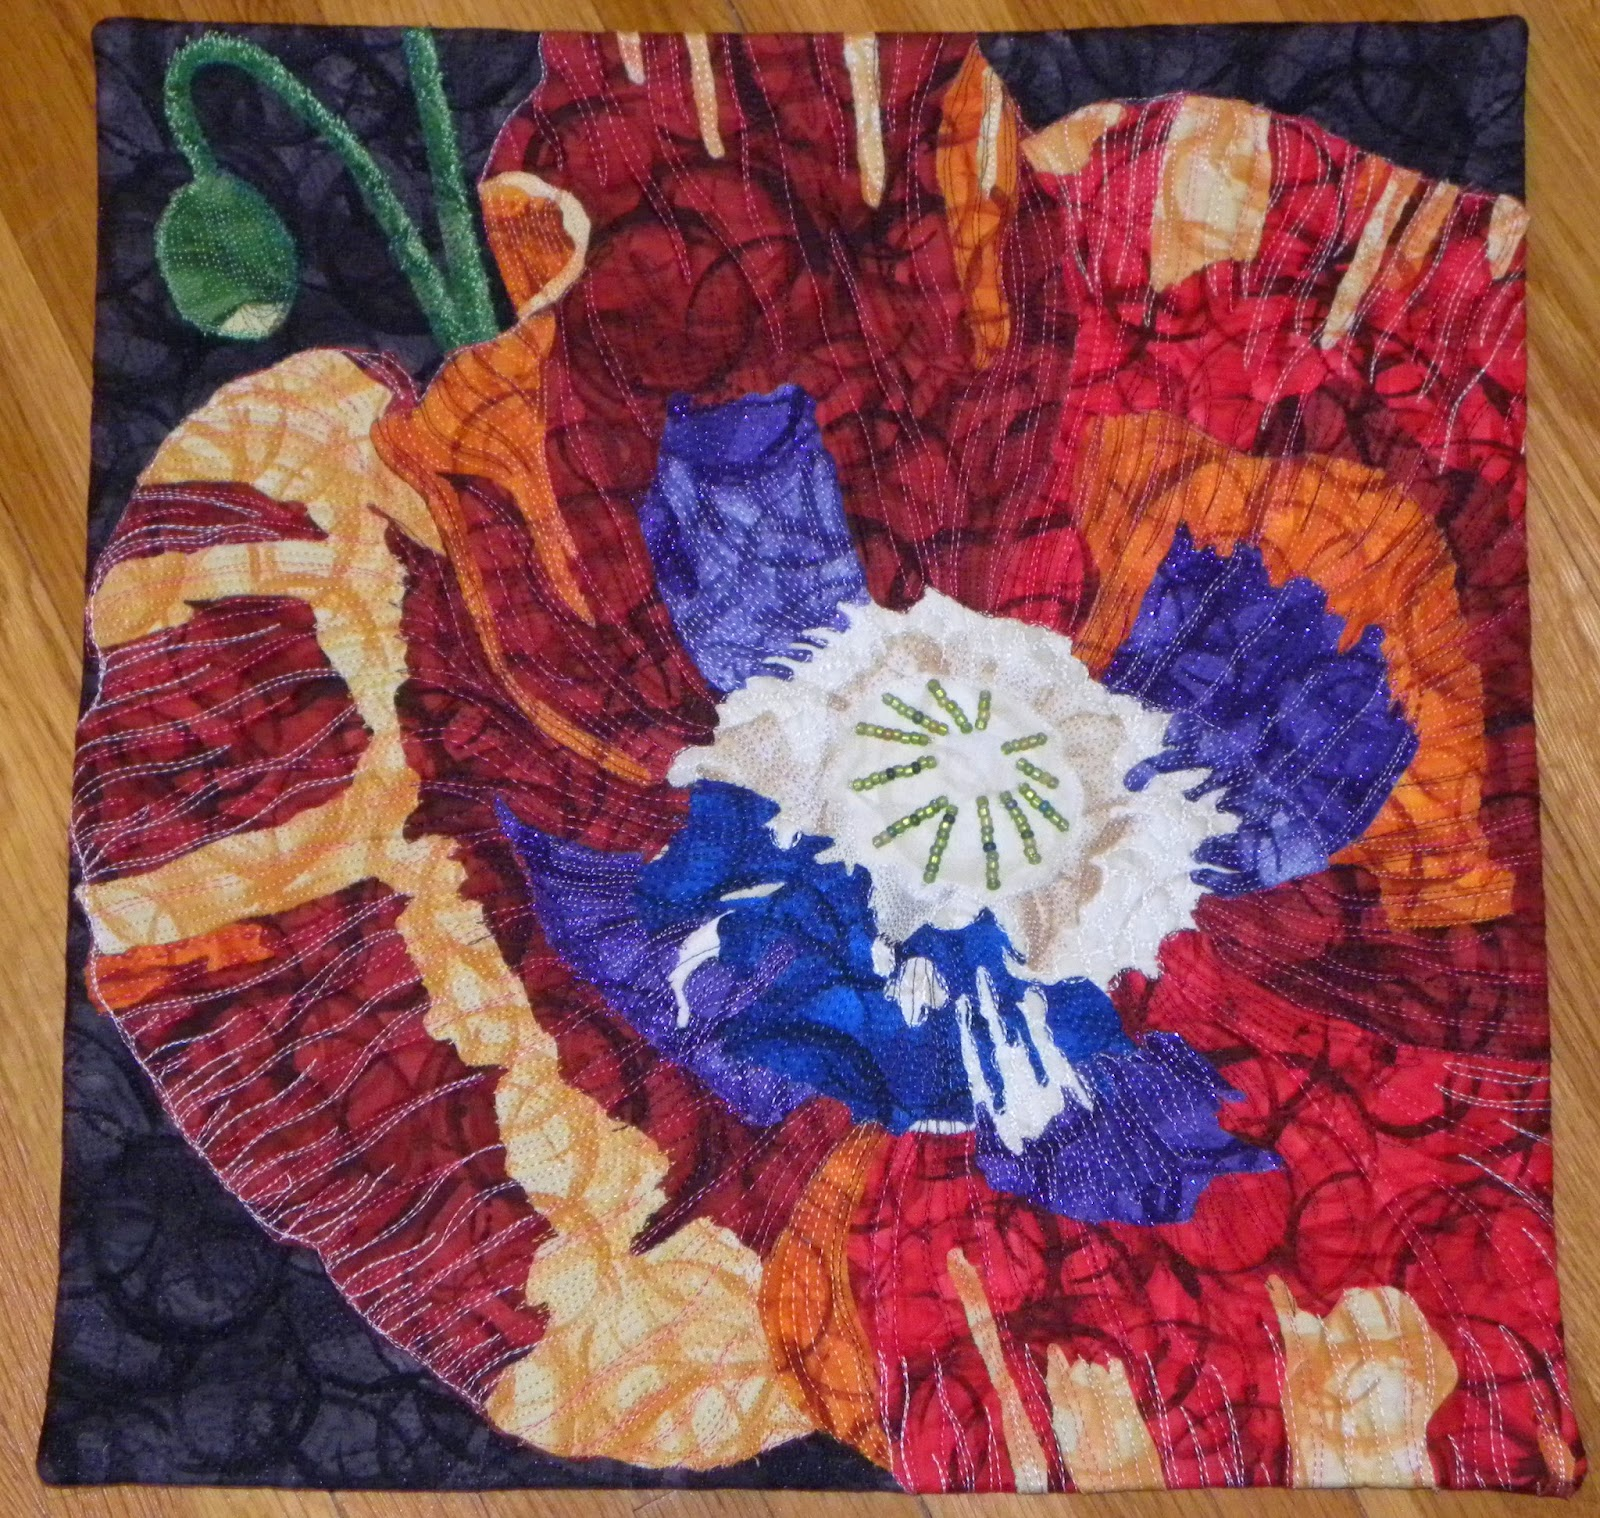 Best Threads For Machine Quilting: Mary Jo's Cloth Design Blog: Creative Quilting With Thread